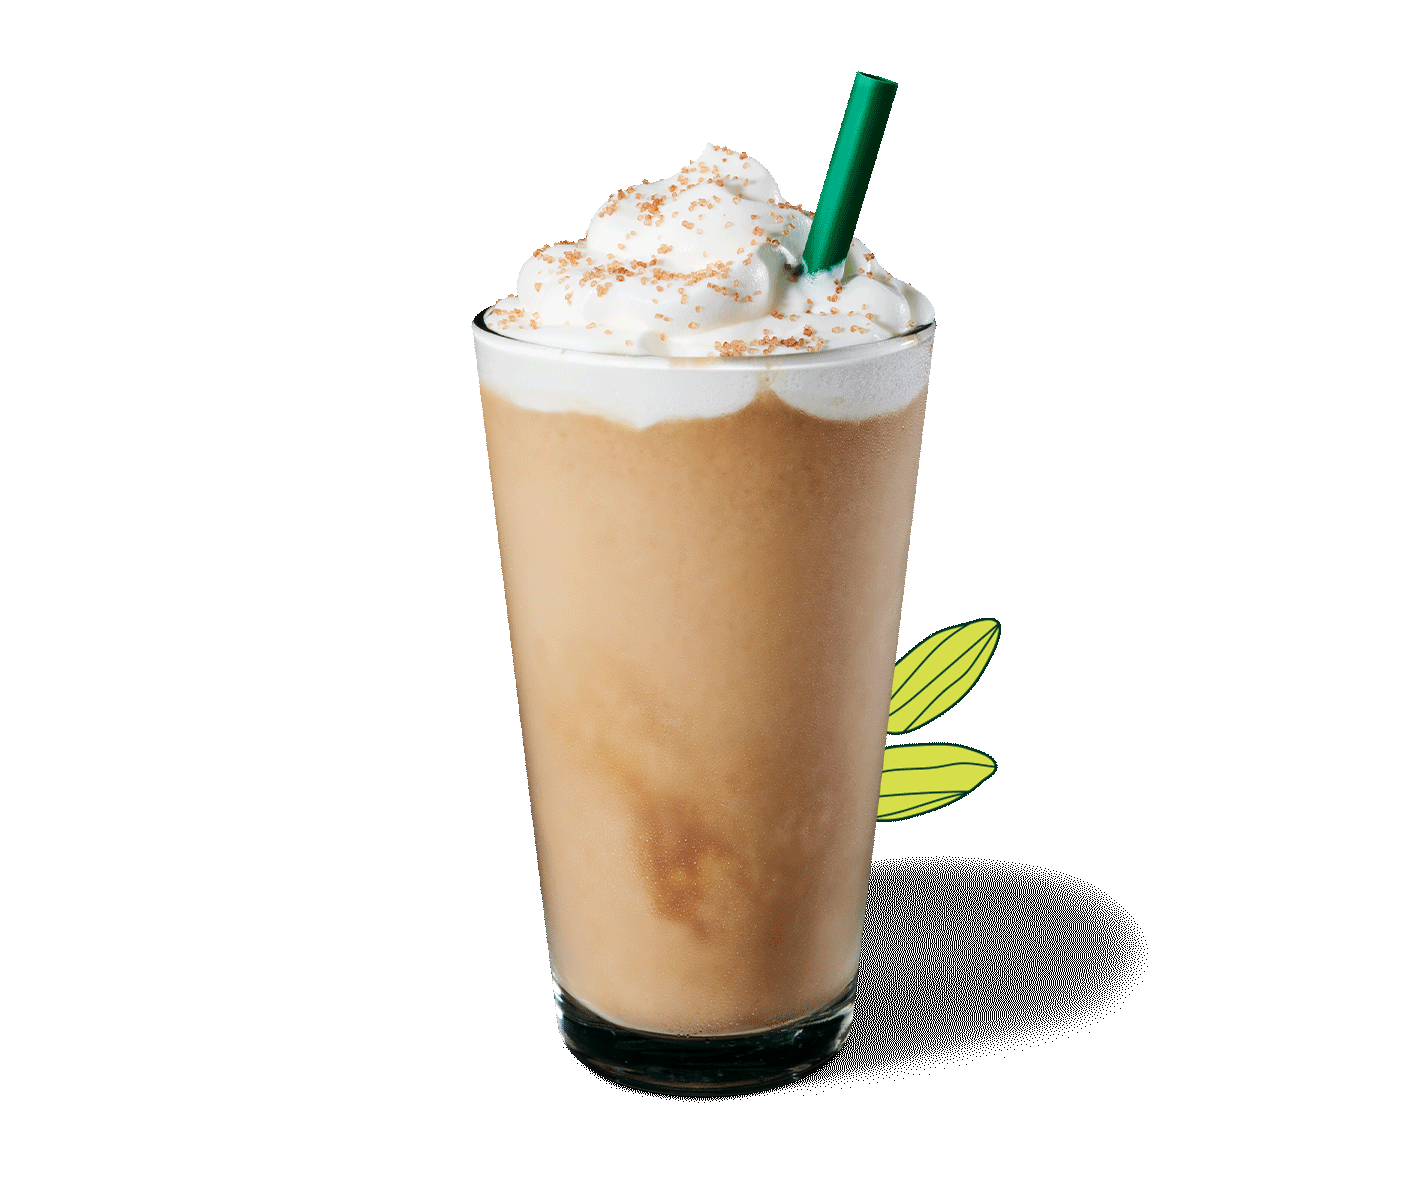 Pistachio Frappuccino® blended beverage in a glass with a straw.